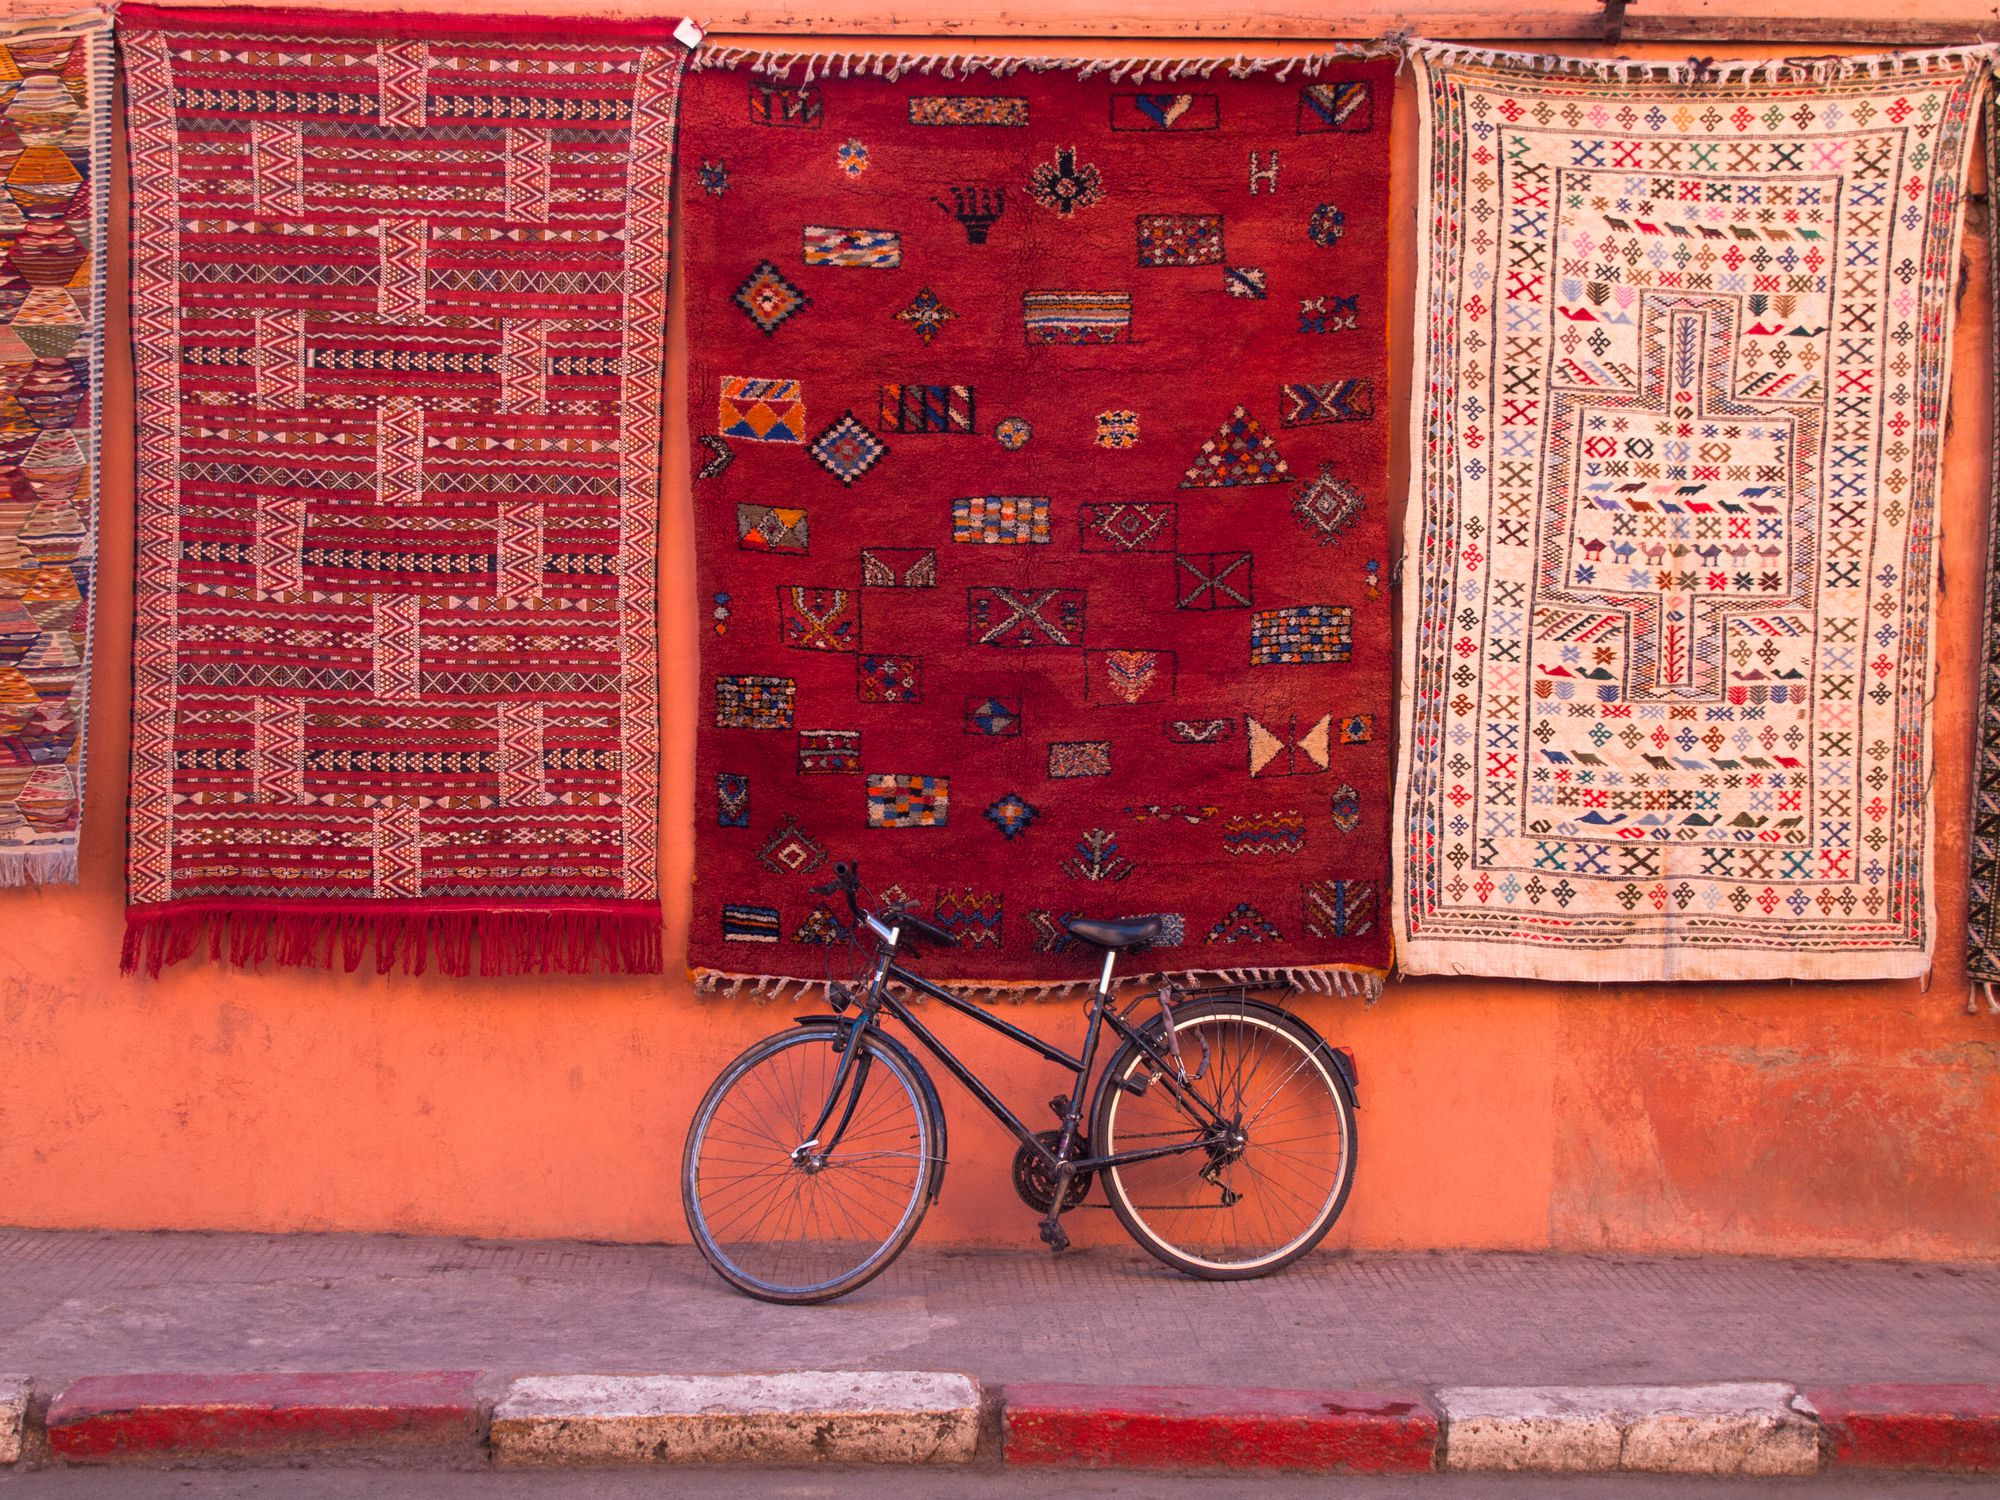 Bicycle parked at wall under hanging carpets with traditional patterns.